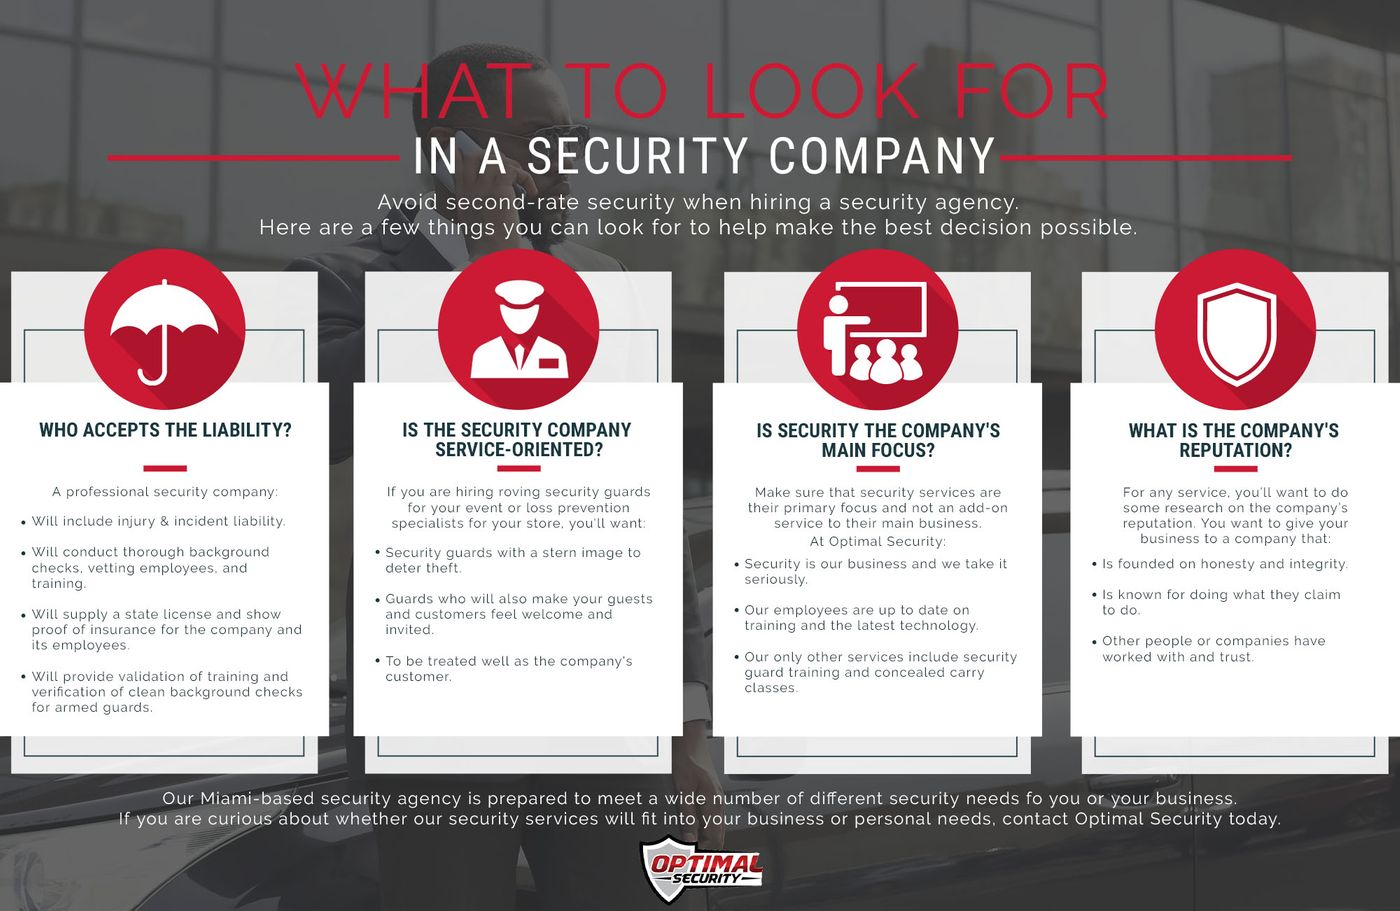 what-to-look-for-in-a-security-company-5f3eecc71153f.jpg